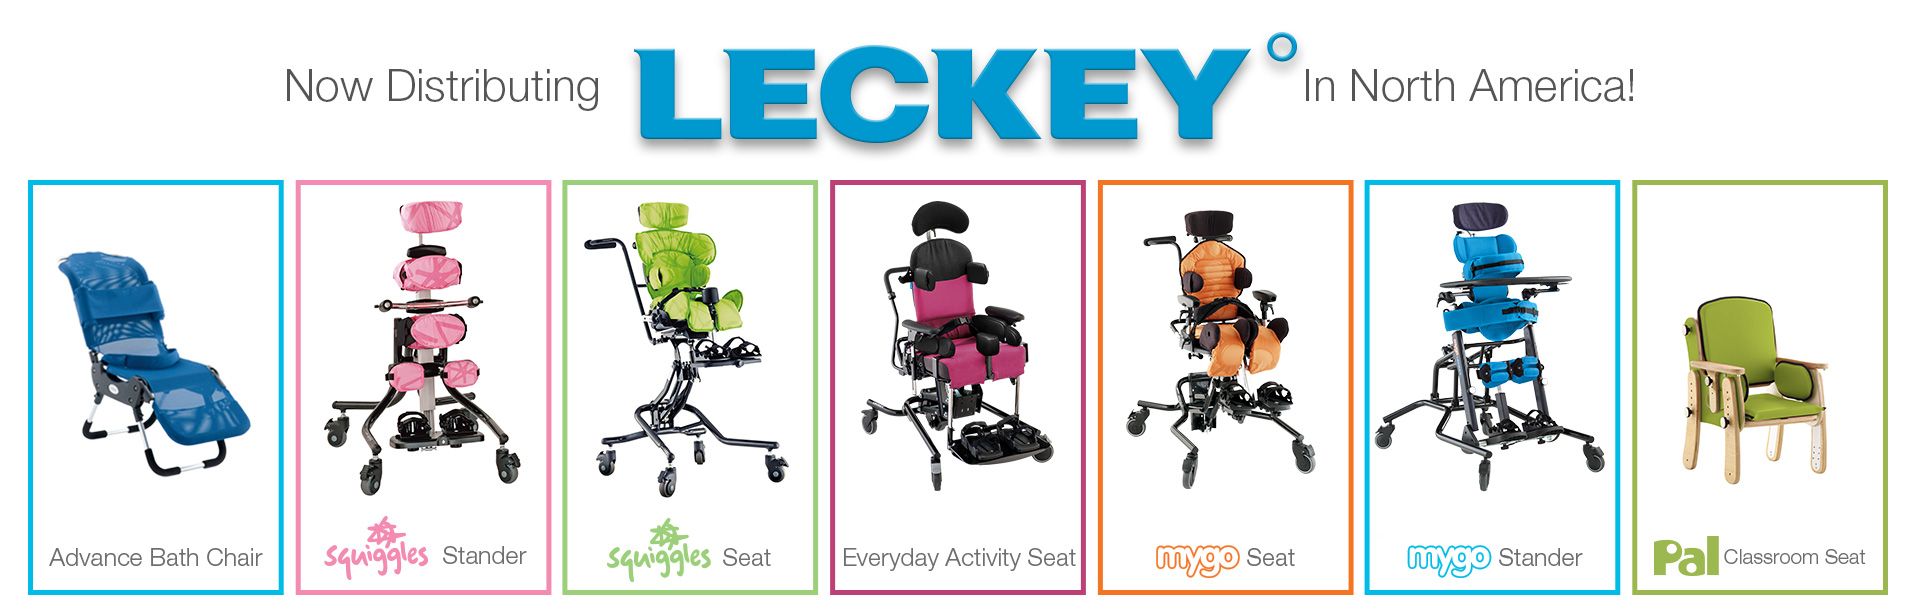 Now Distributing Leckey in North America!